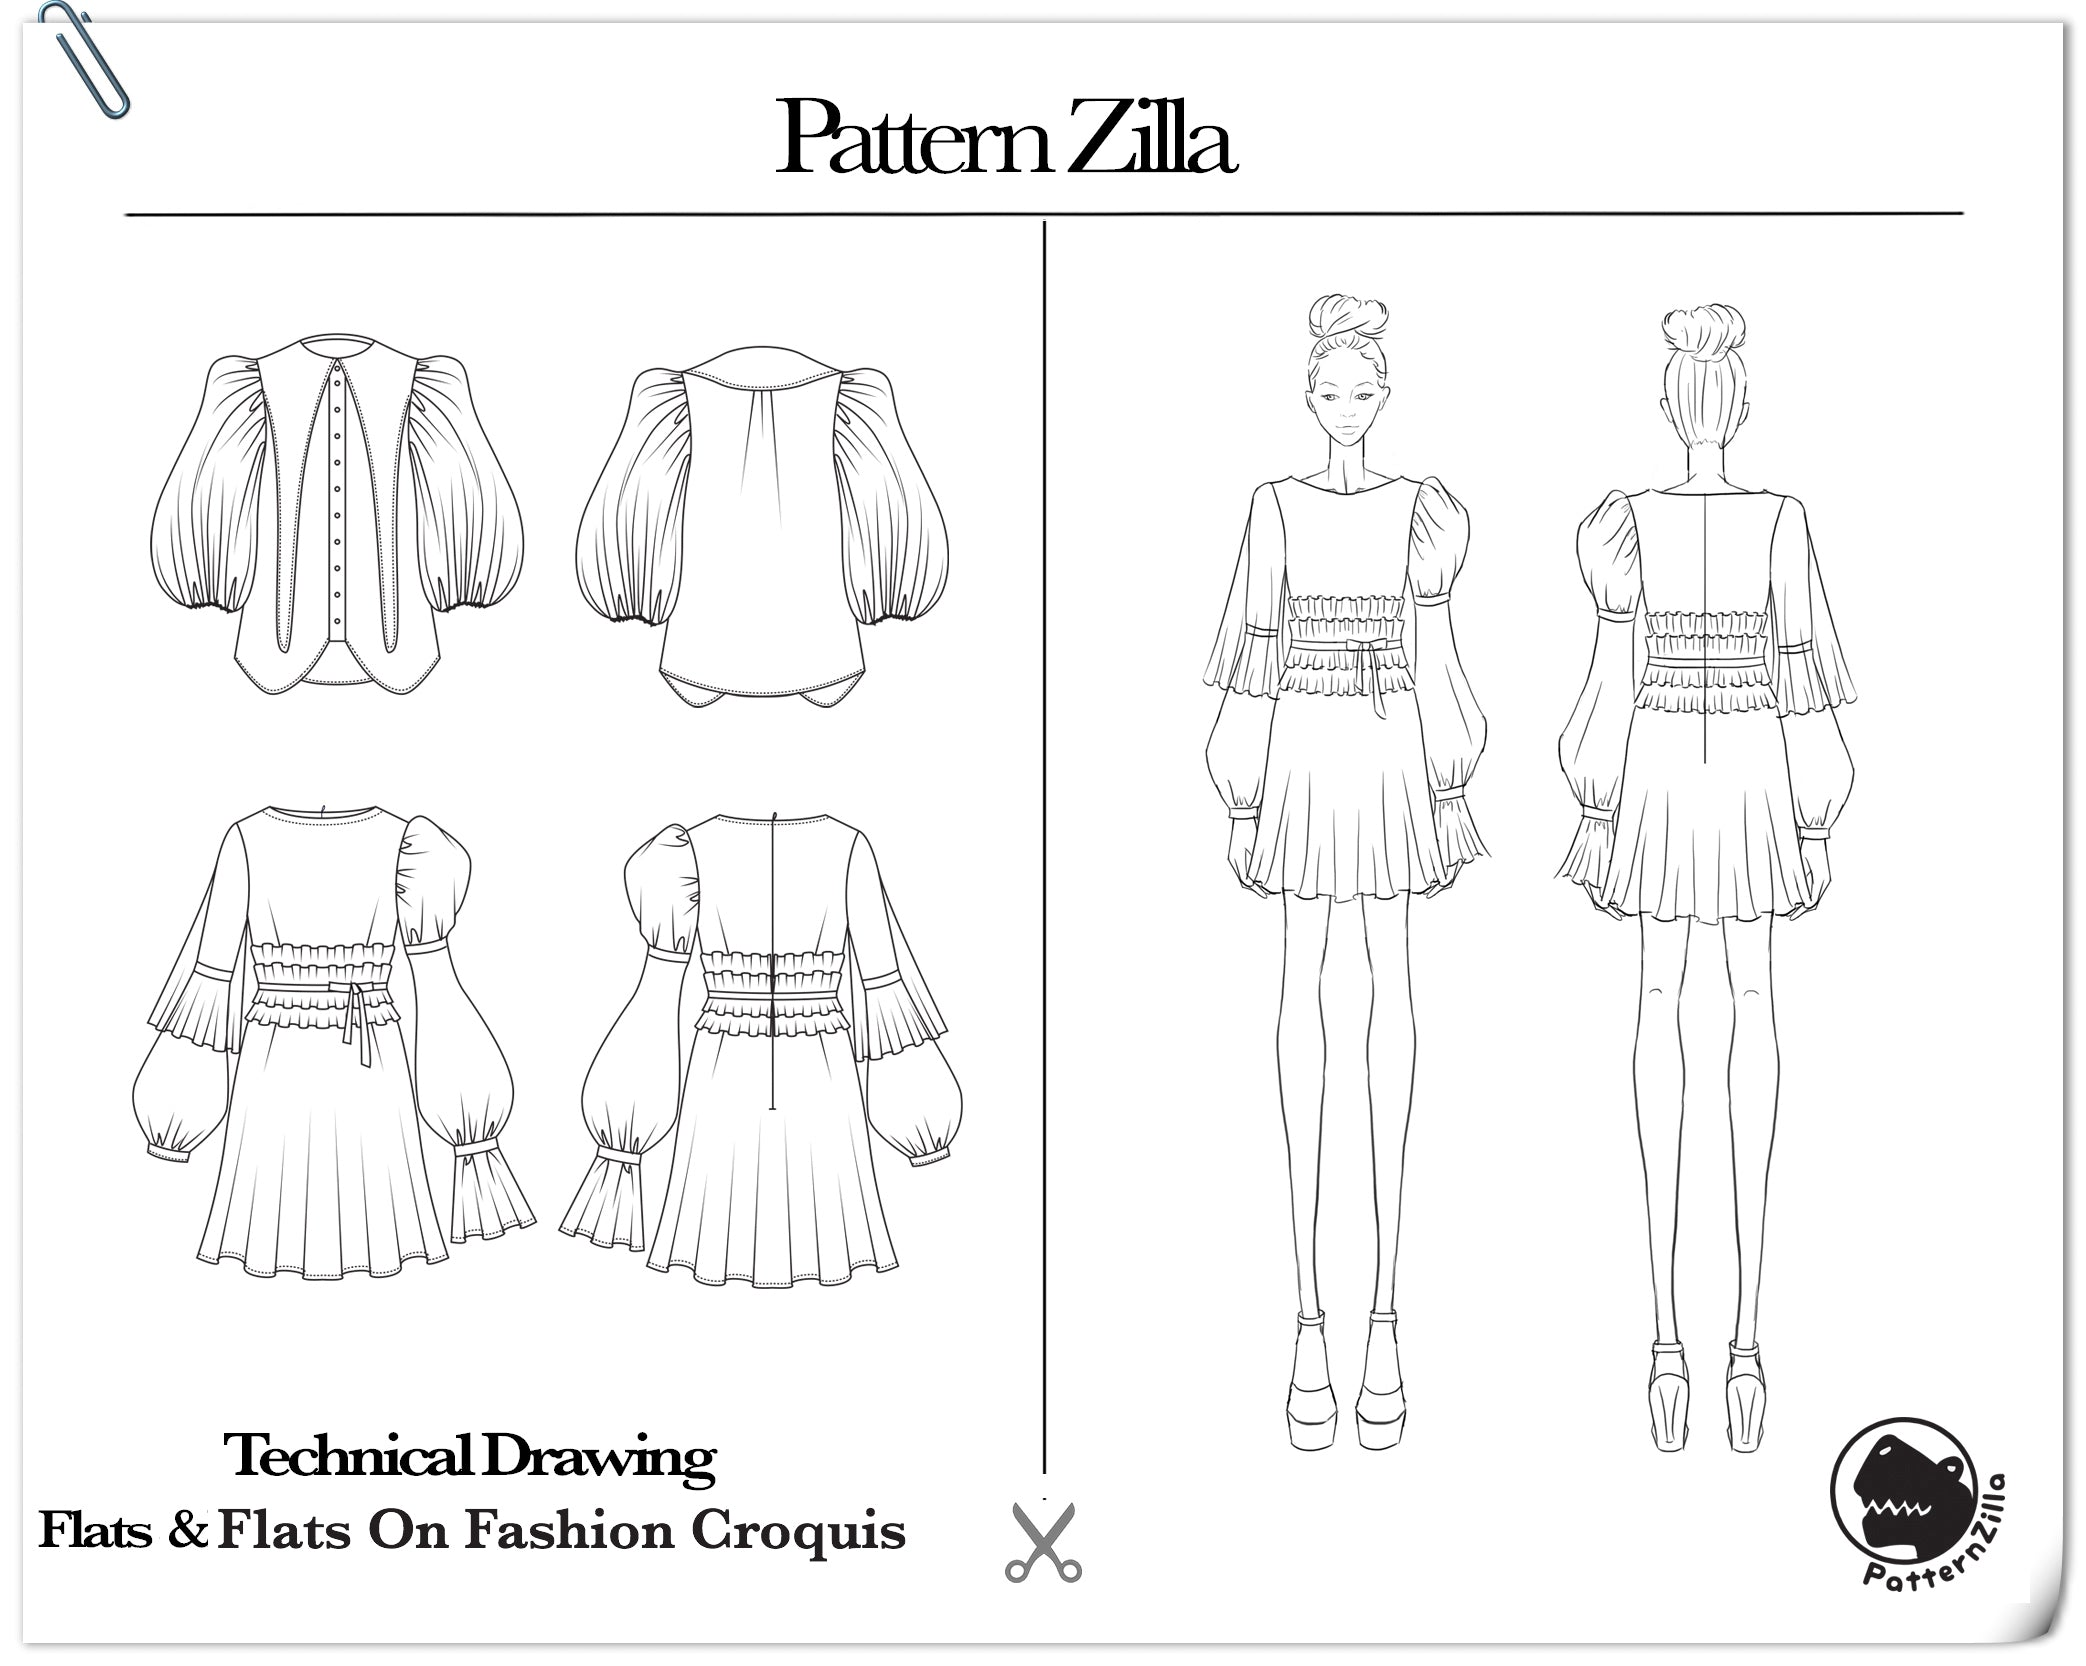 technical drawing flats fashion croquis patternzilla